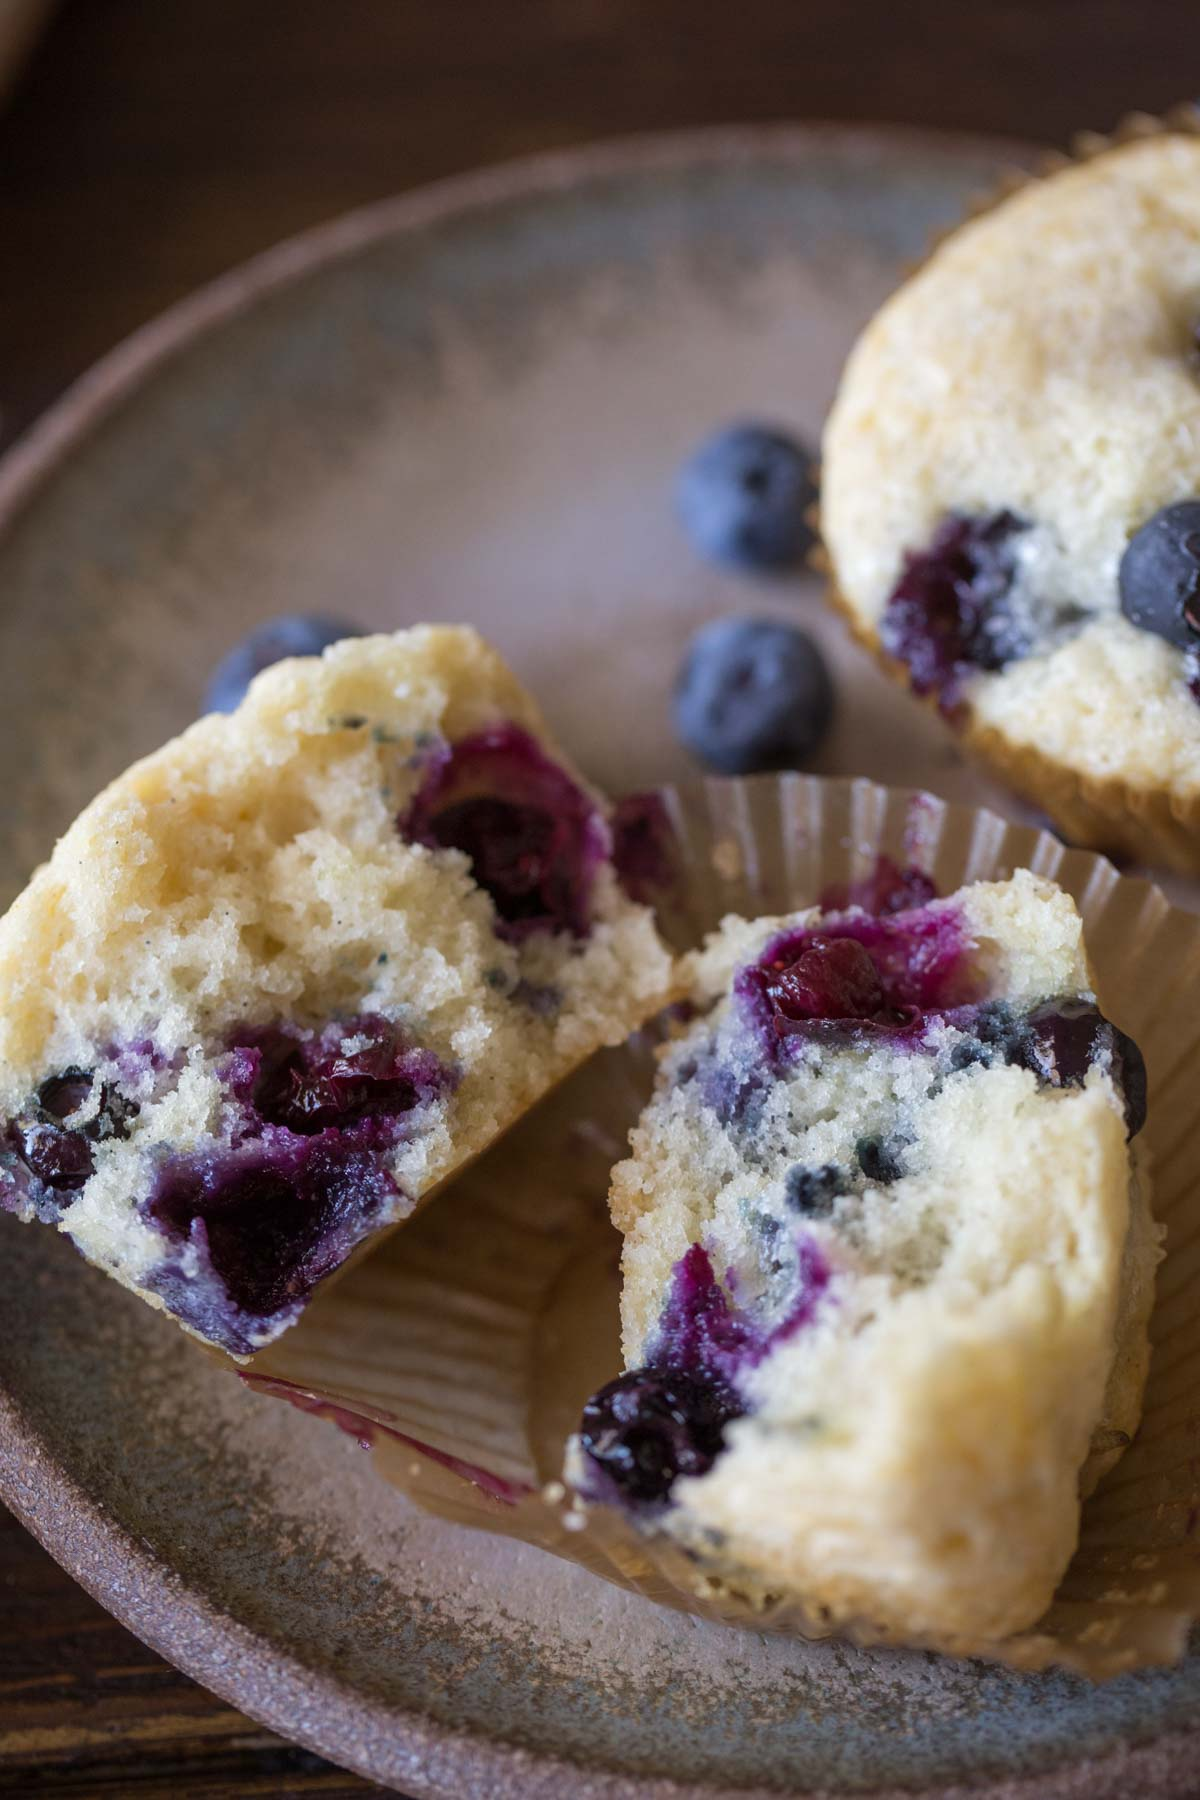 A Vanilla Blueberry Buttermilk Muffin split in half, sitting on a plate with another whole muffin and some blueberries.